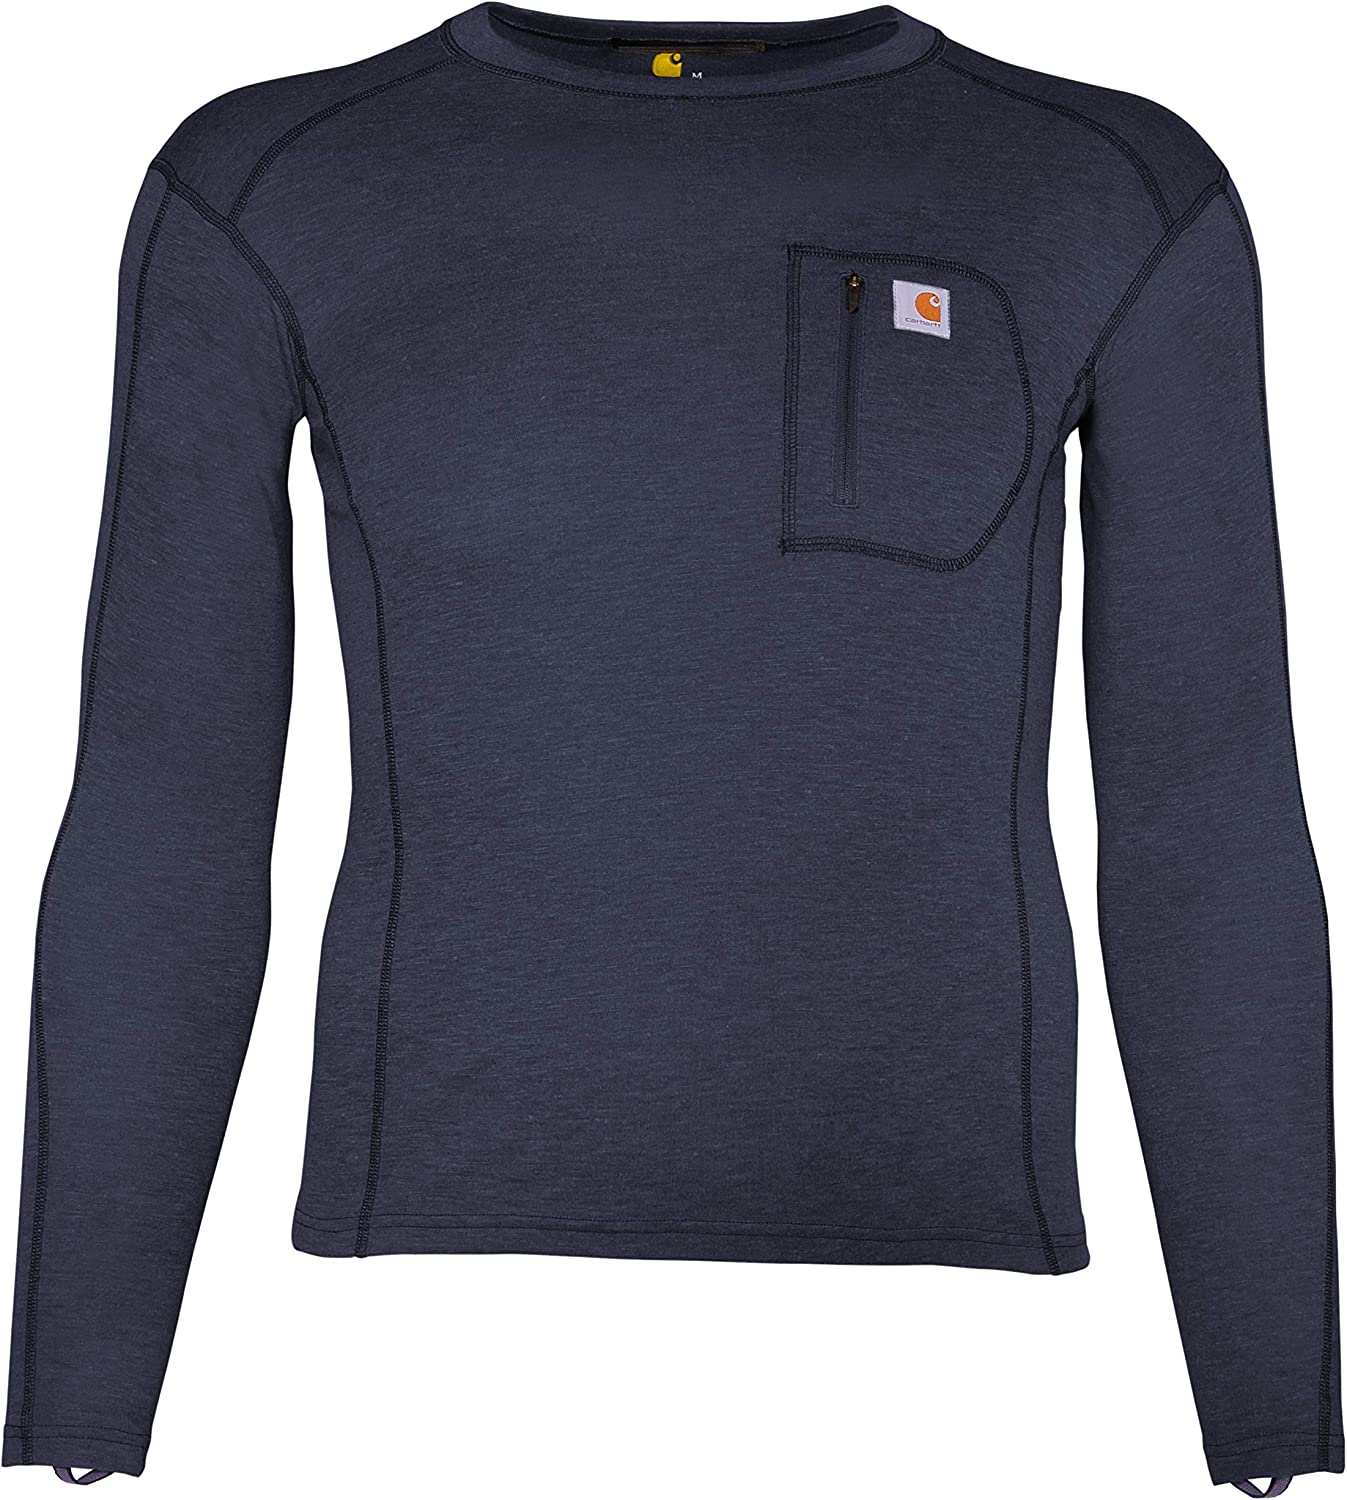 Carhartt Men's Force Max 79% 2021new shipping free shipping OFF Heavyweight Thermal Layer Base Long Sleeve